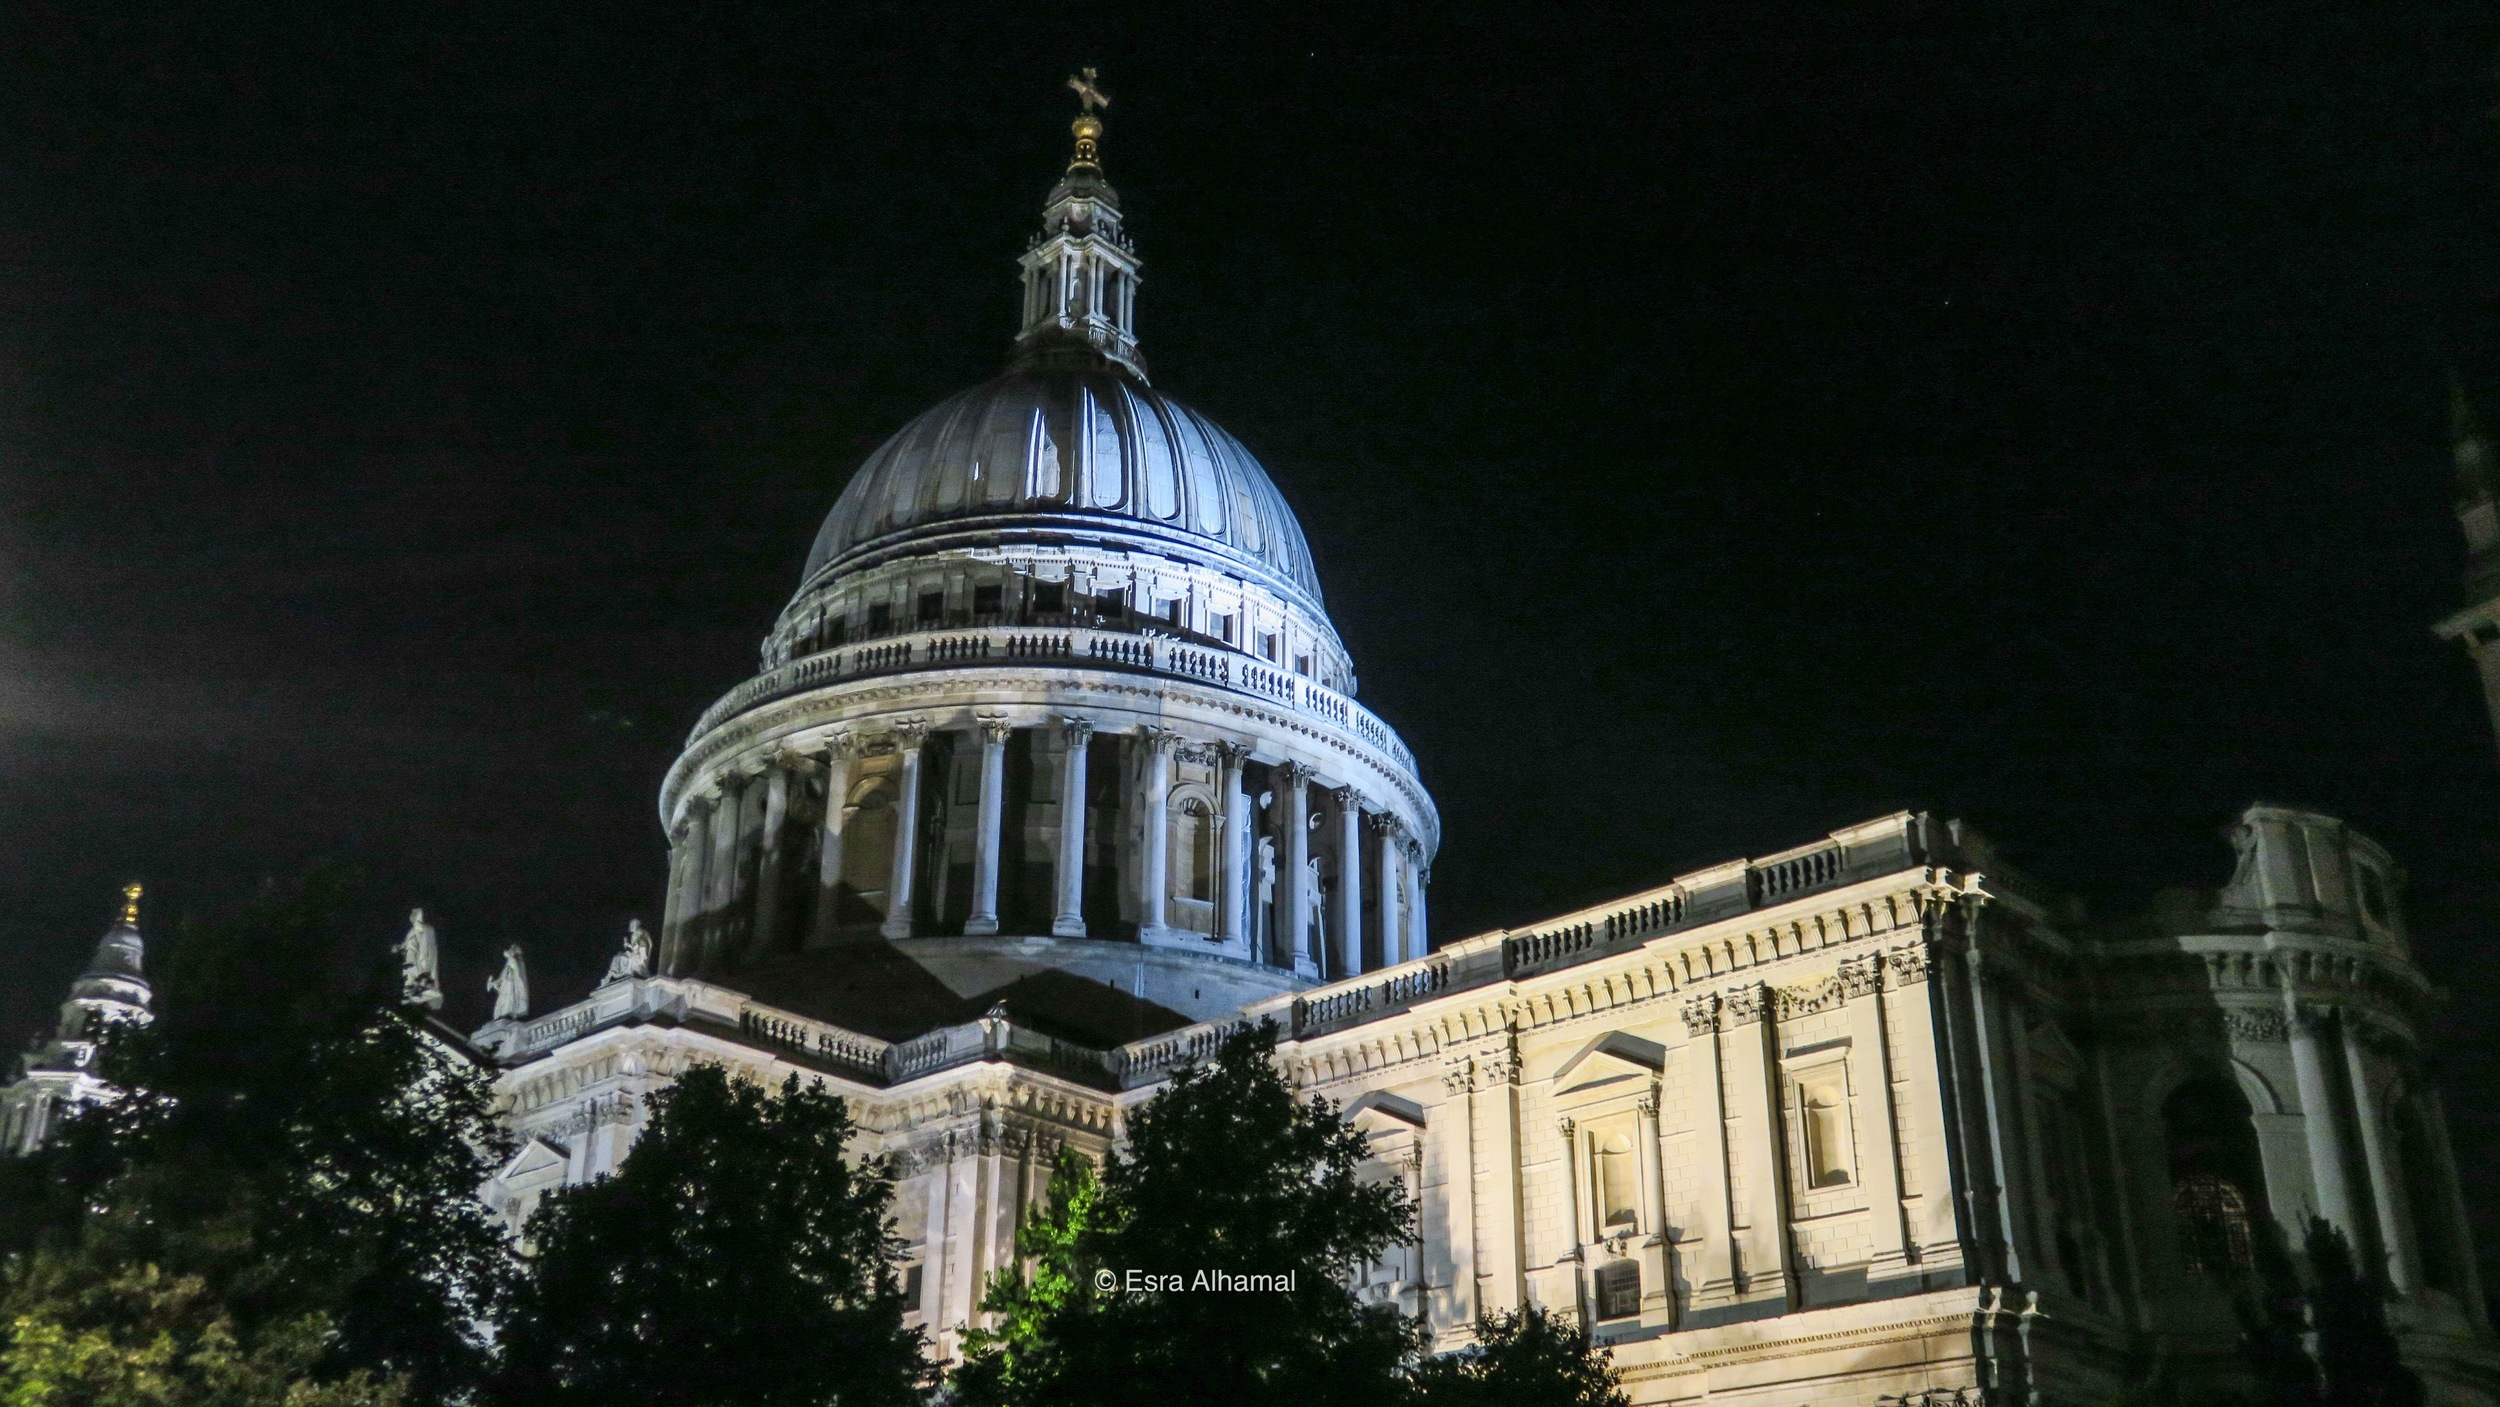 St Paul Cathedral at night